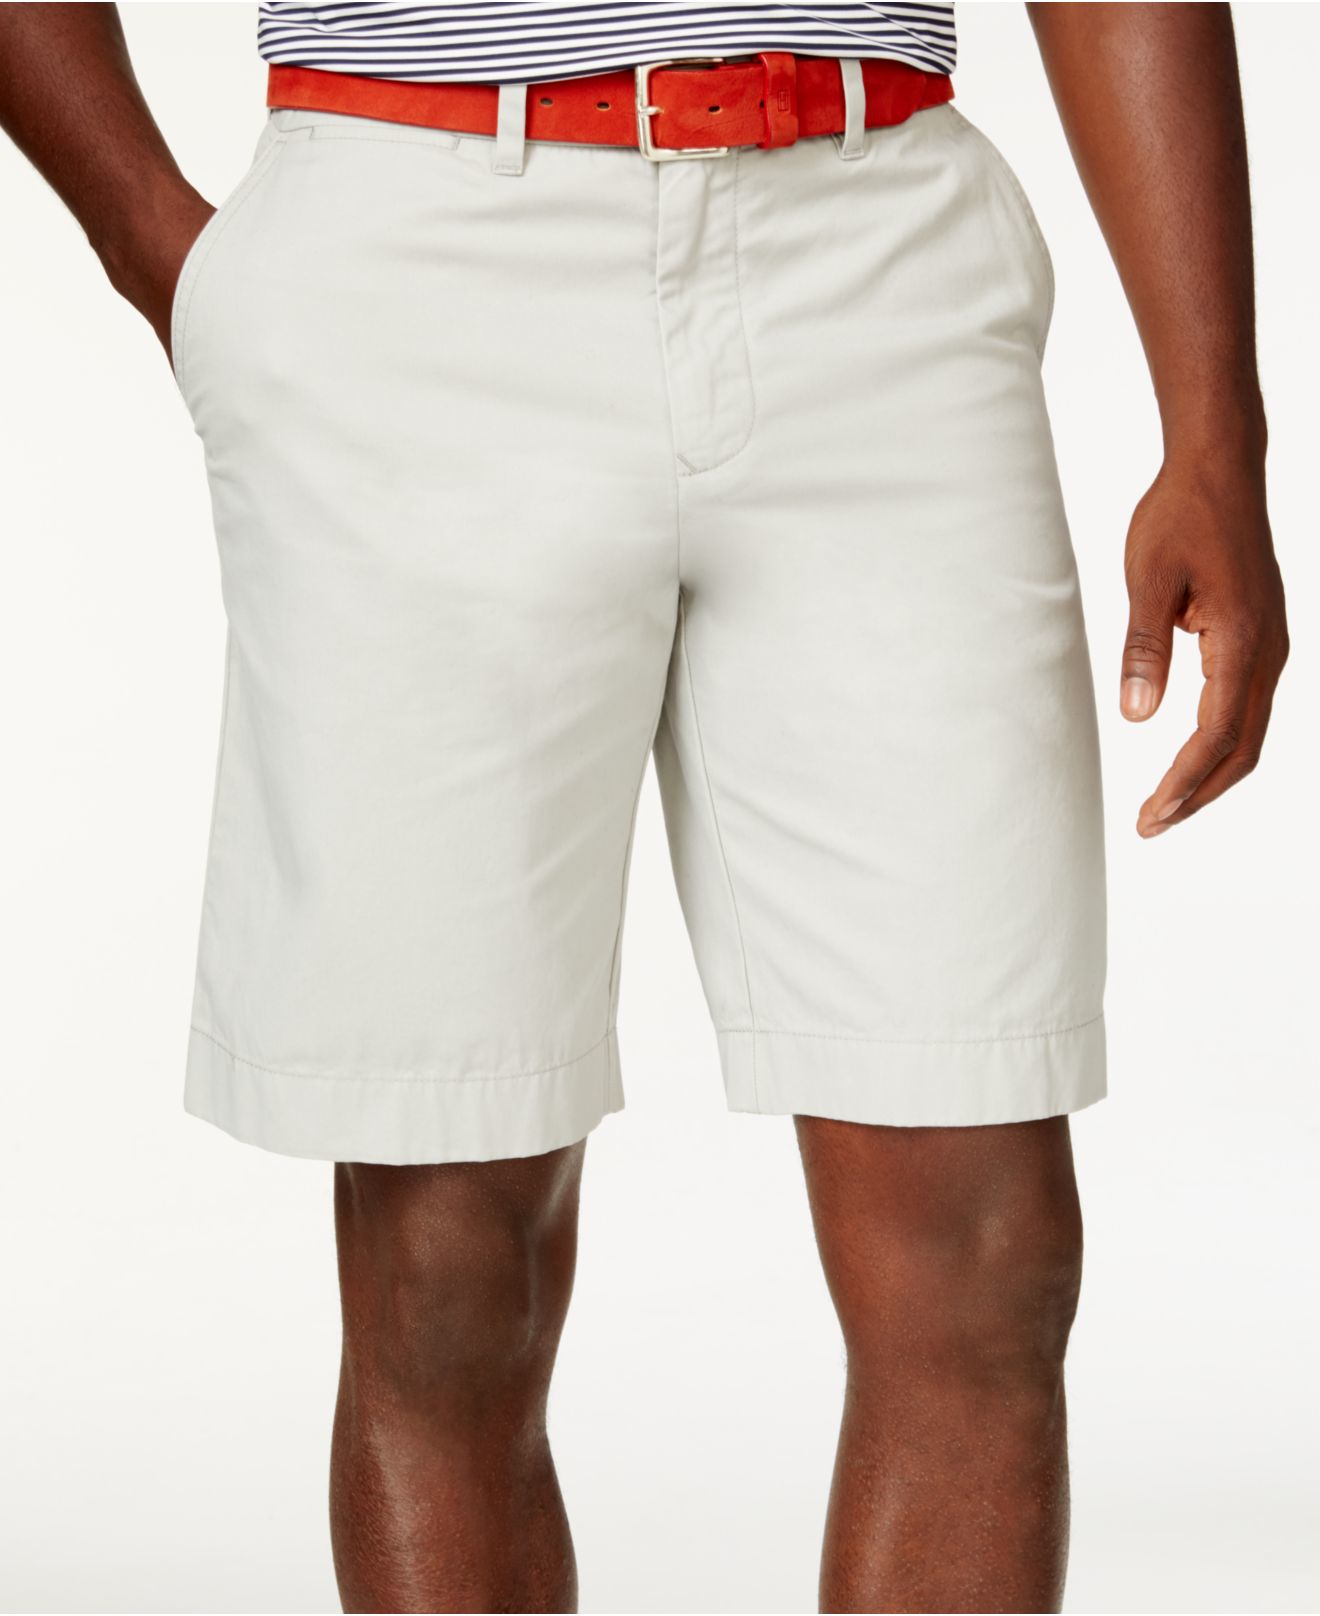 tommy hilfiger classic fit chino shorts in white for men. Black Bedroom Furniture Sets. Home Design Ideas